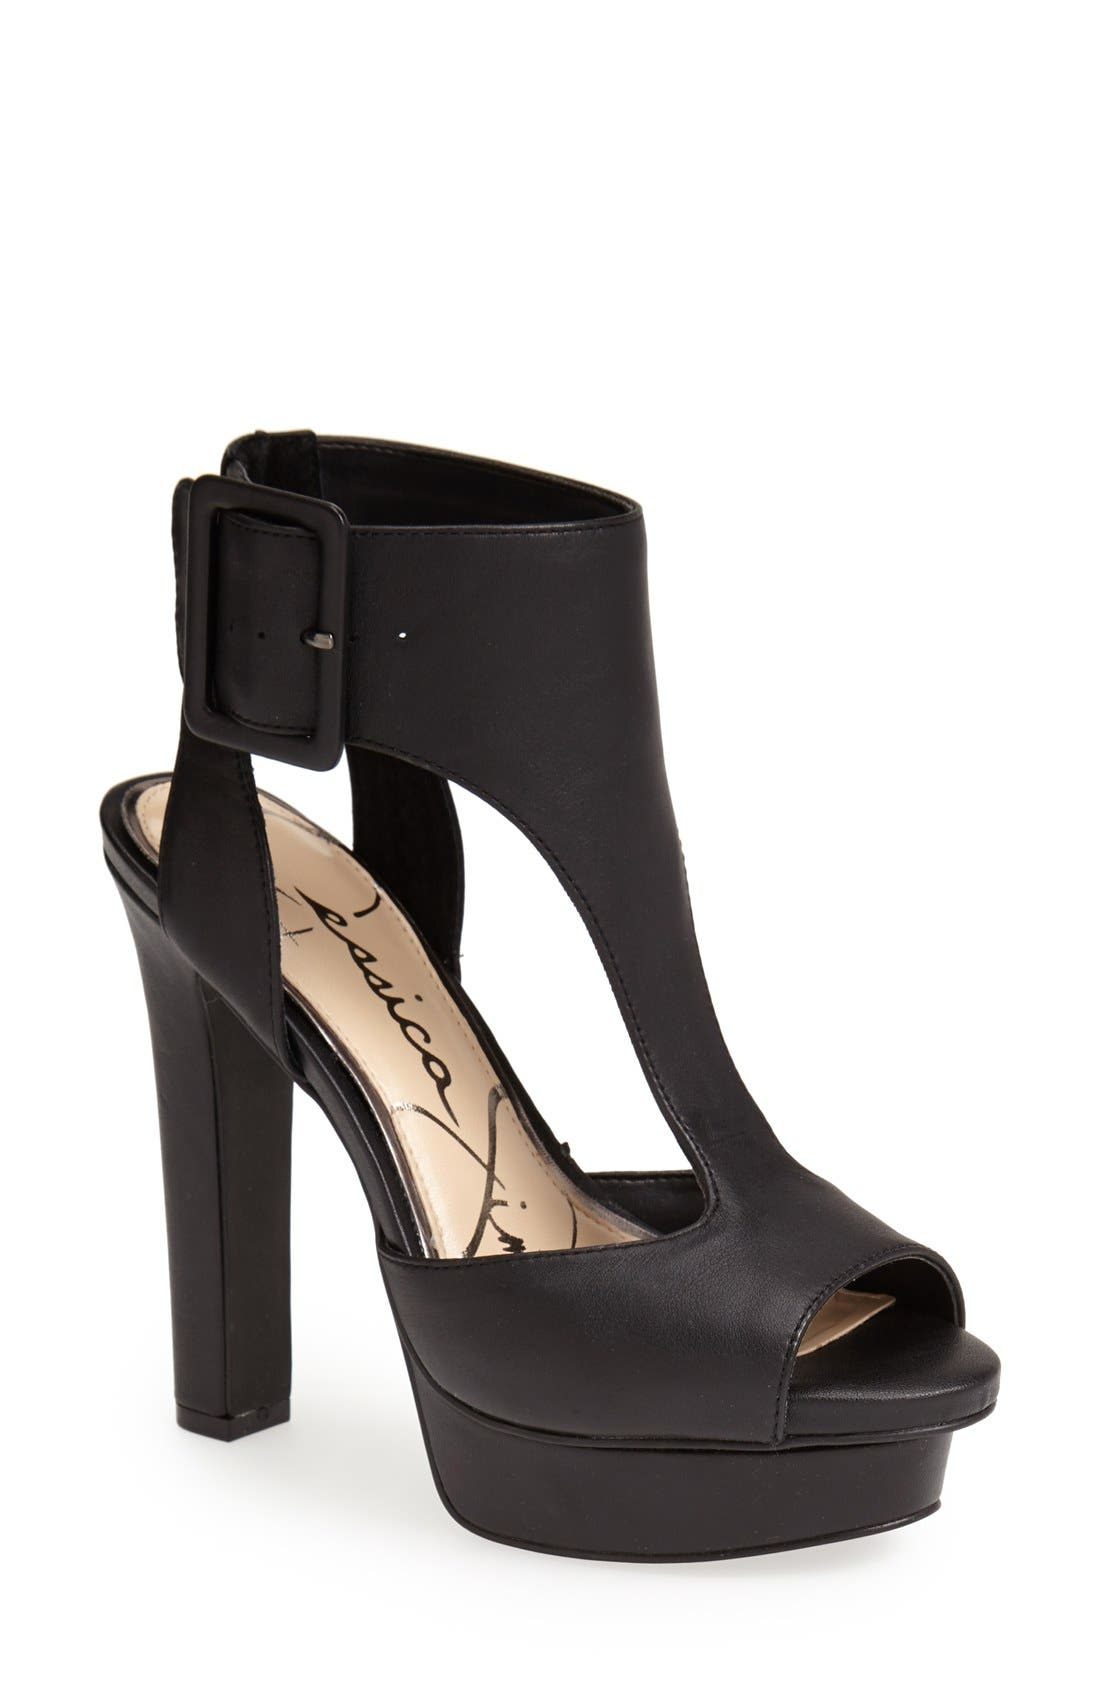 Alternate Image 1 Selected - Jessica Simpson 'Dewy' Cutout Sandal (Women)